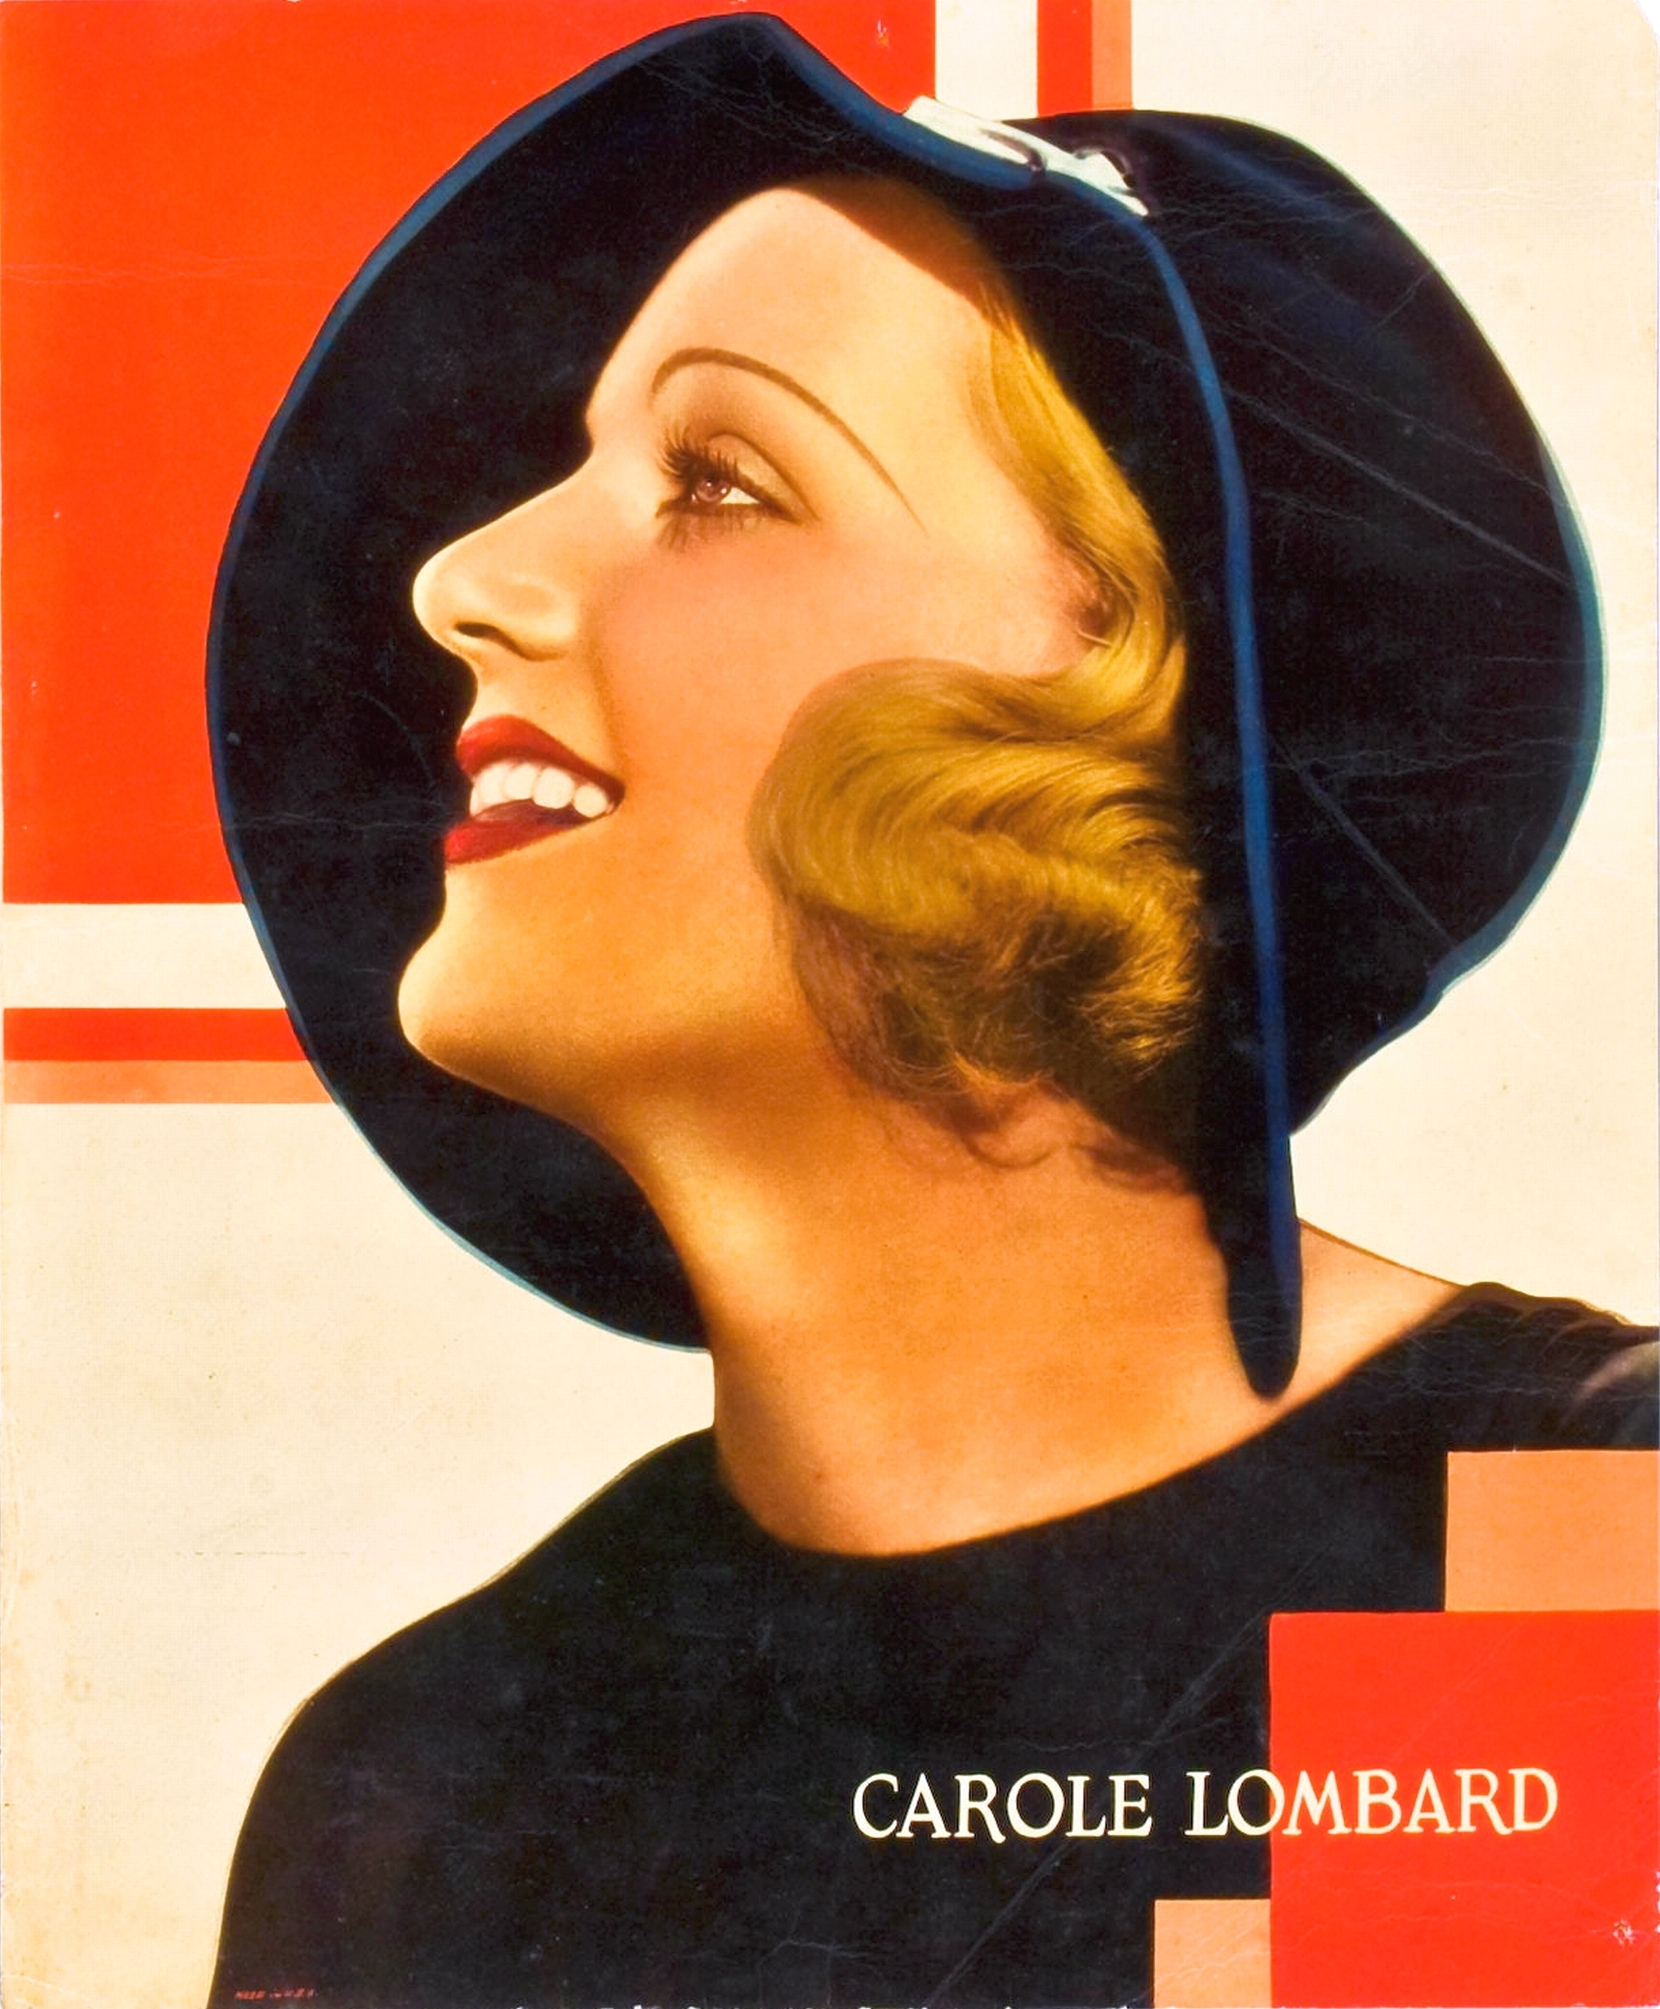 carole lombard paramount personality poster 00a large